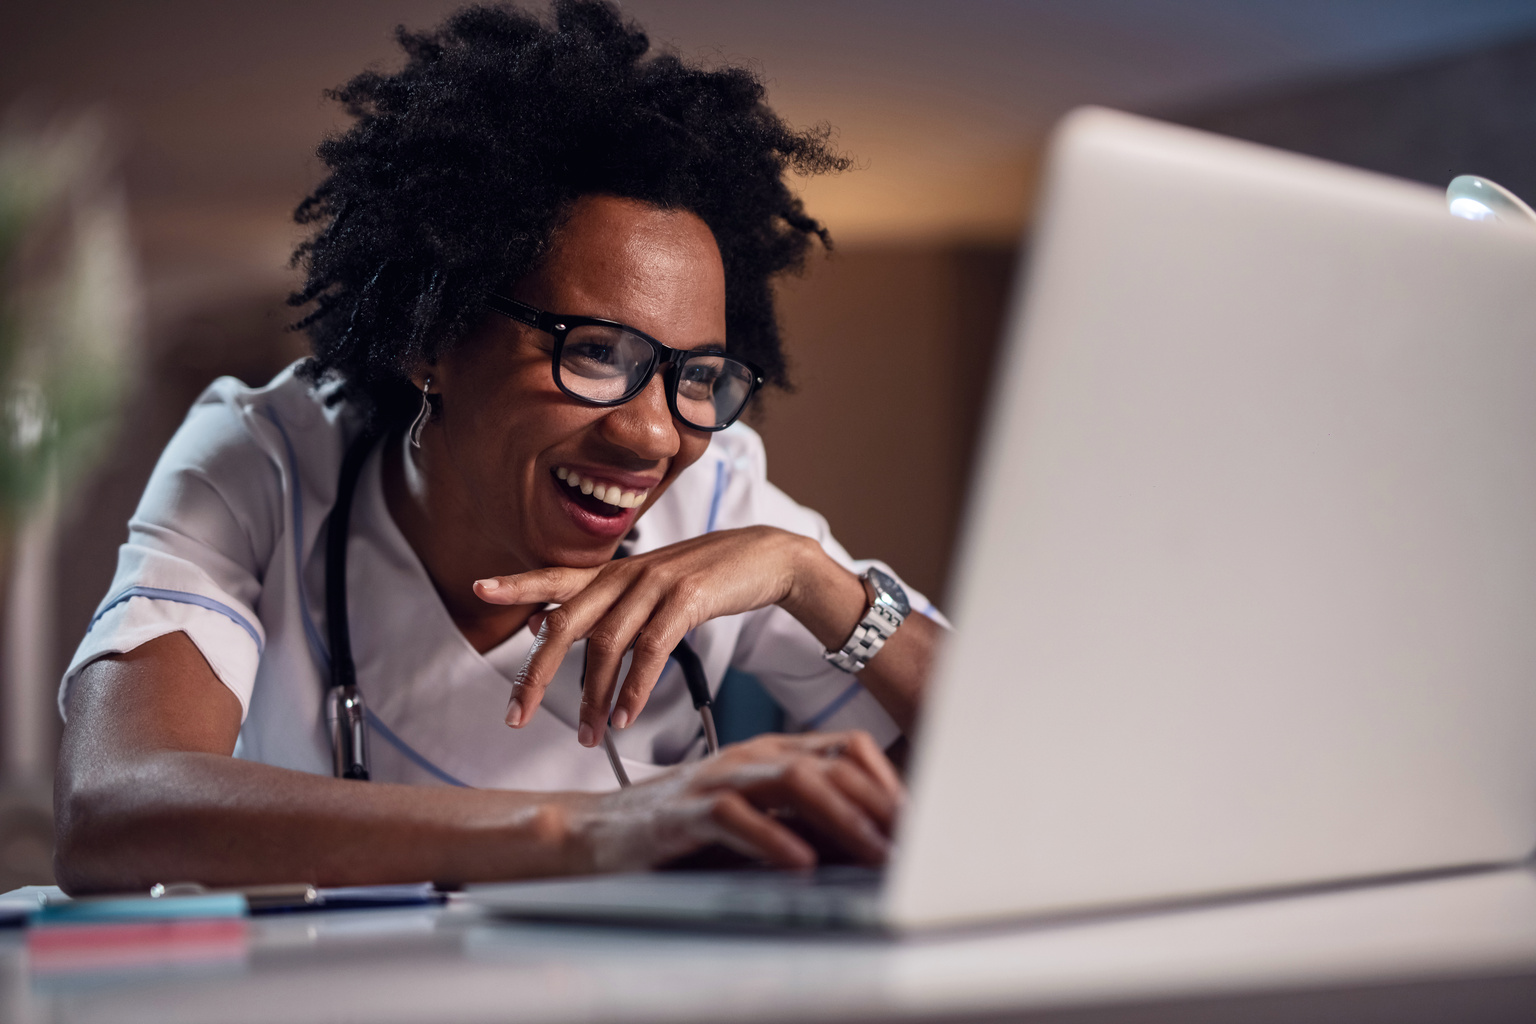 Happy black female doctor surfing the internet on laptop